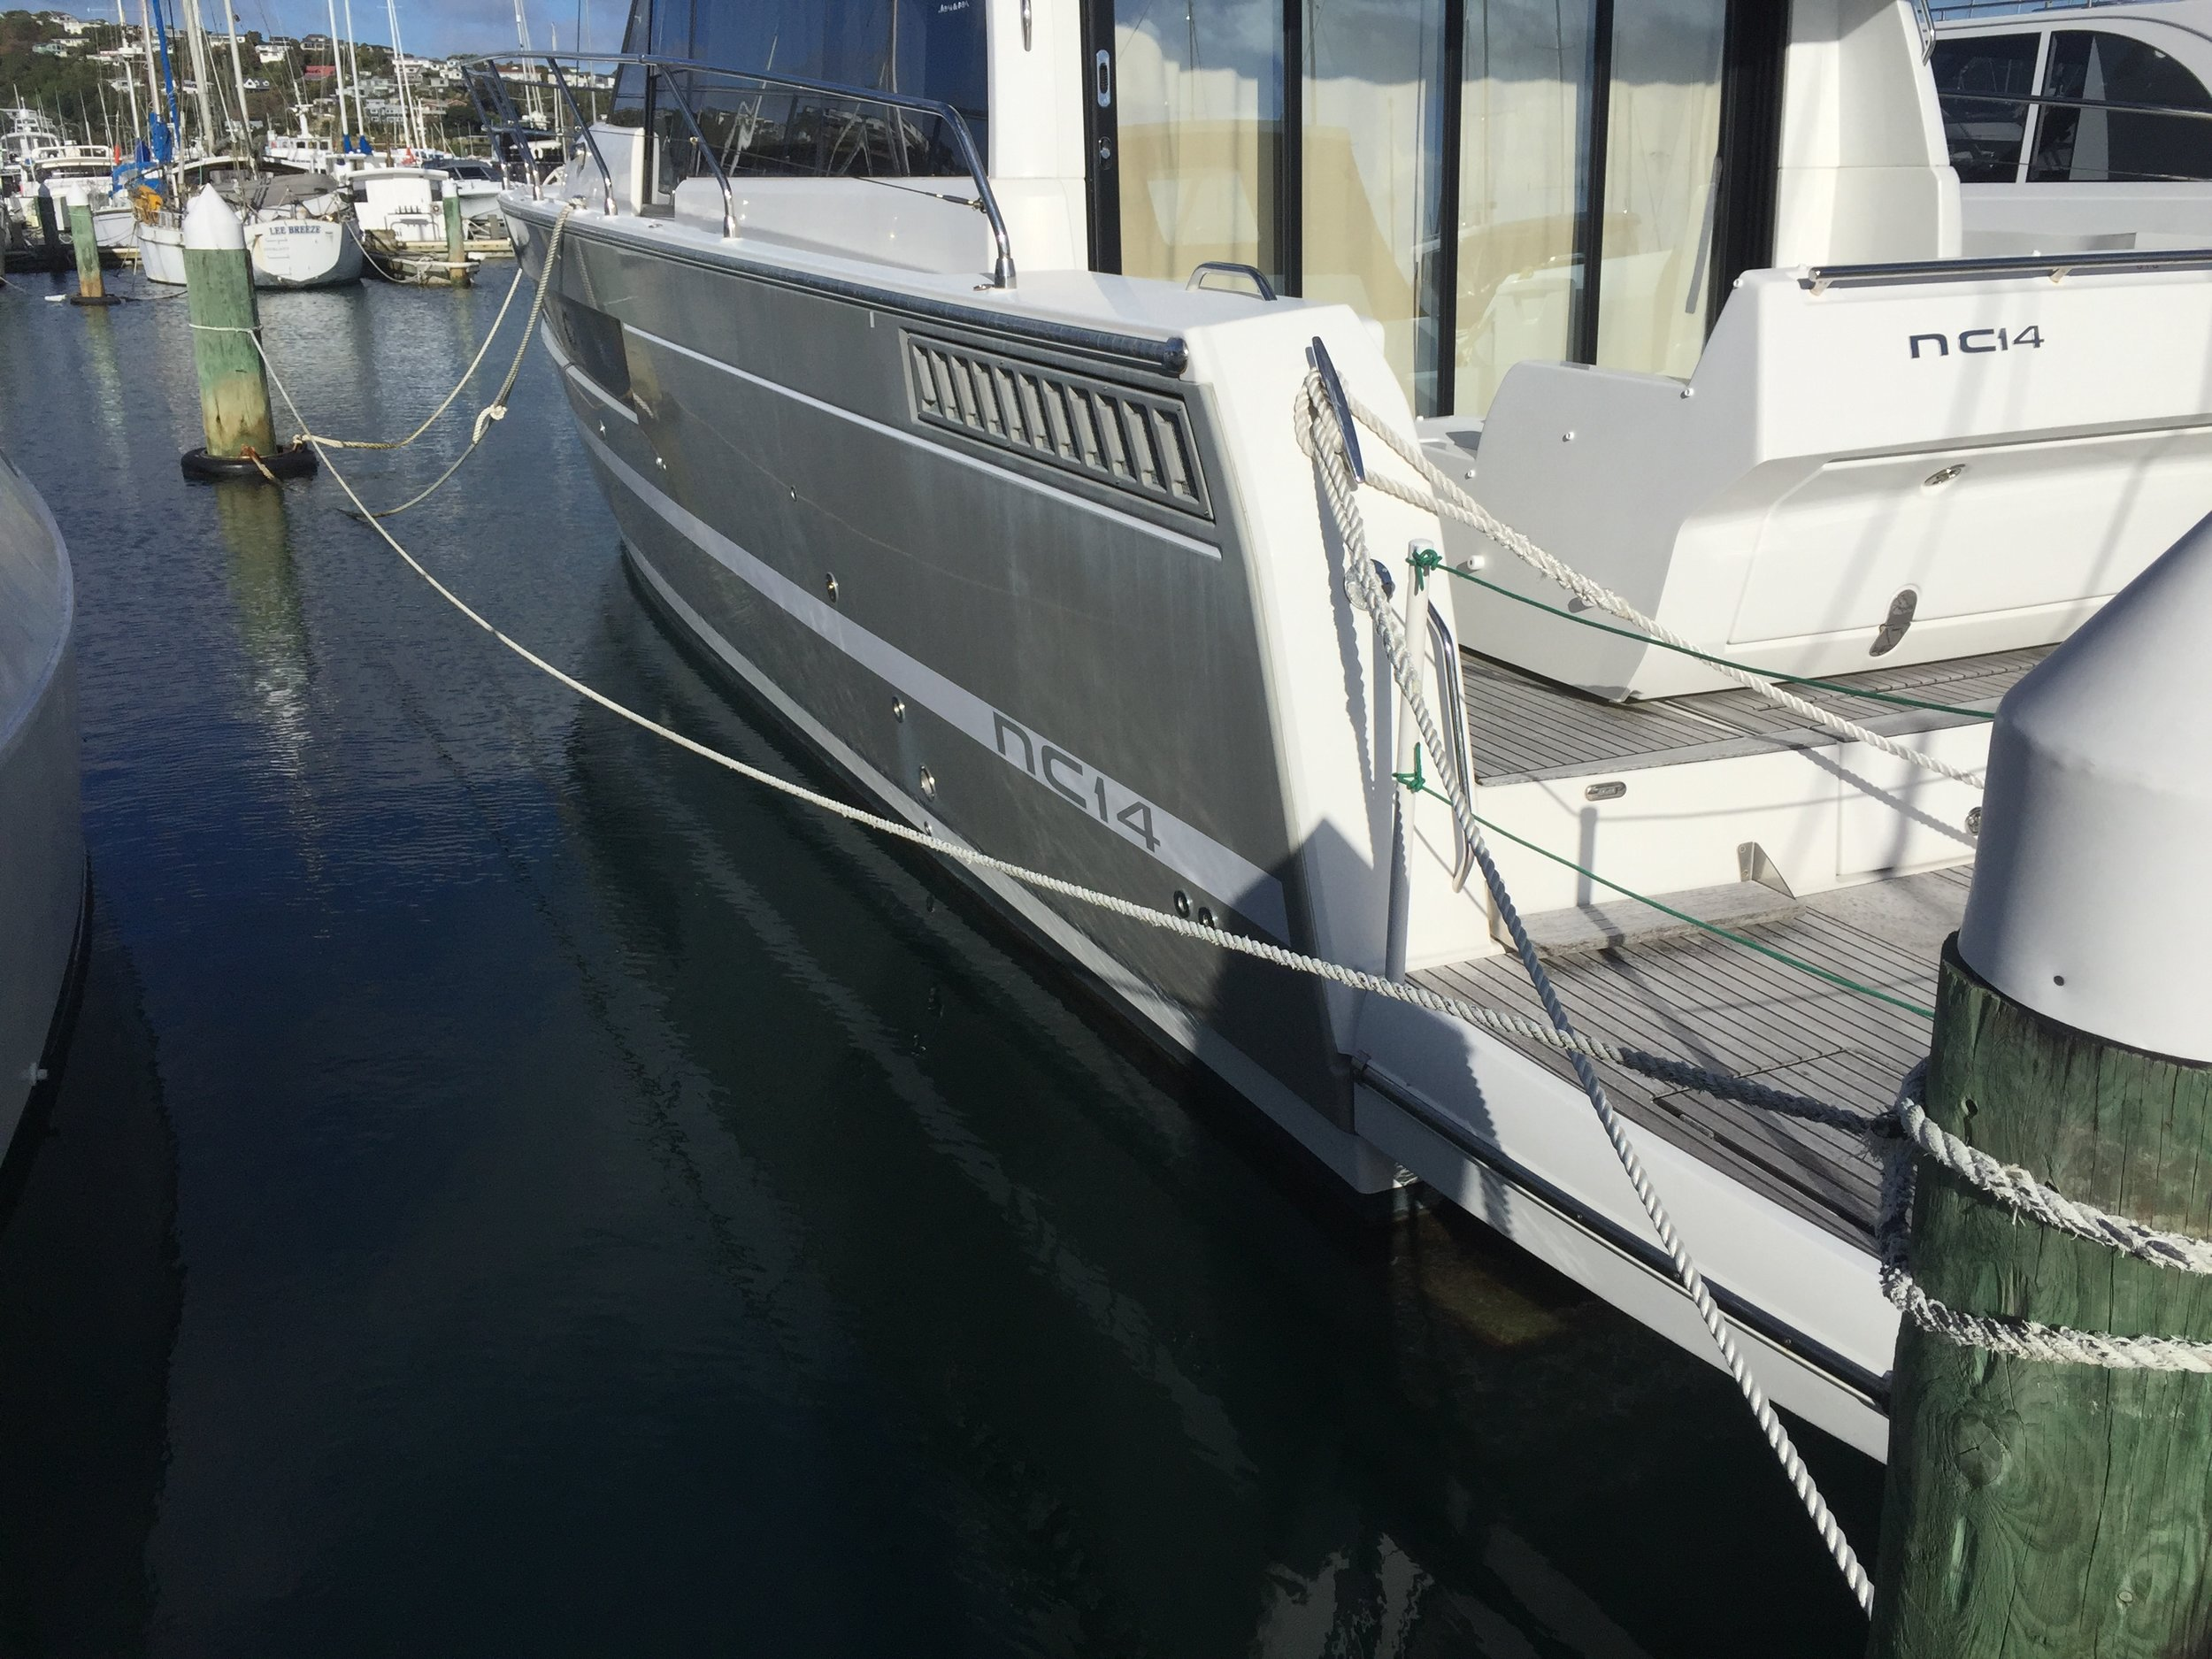 Stern + Bow lines with additional Pickup line